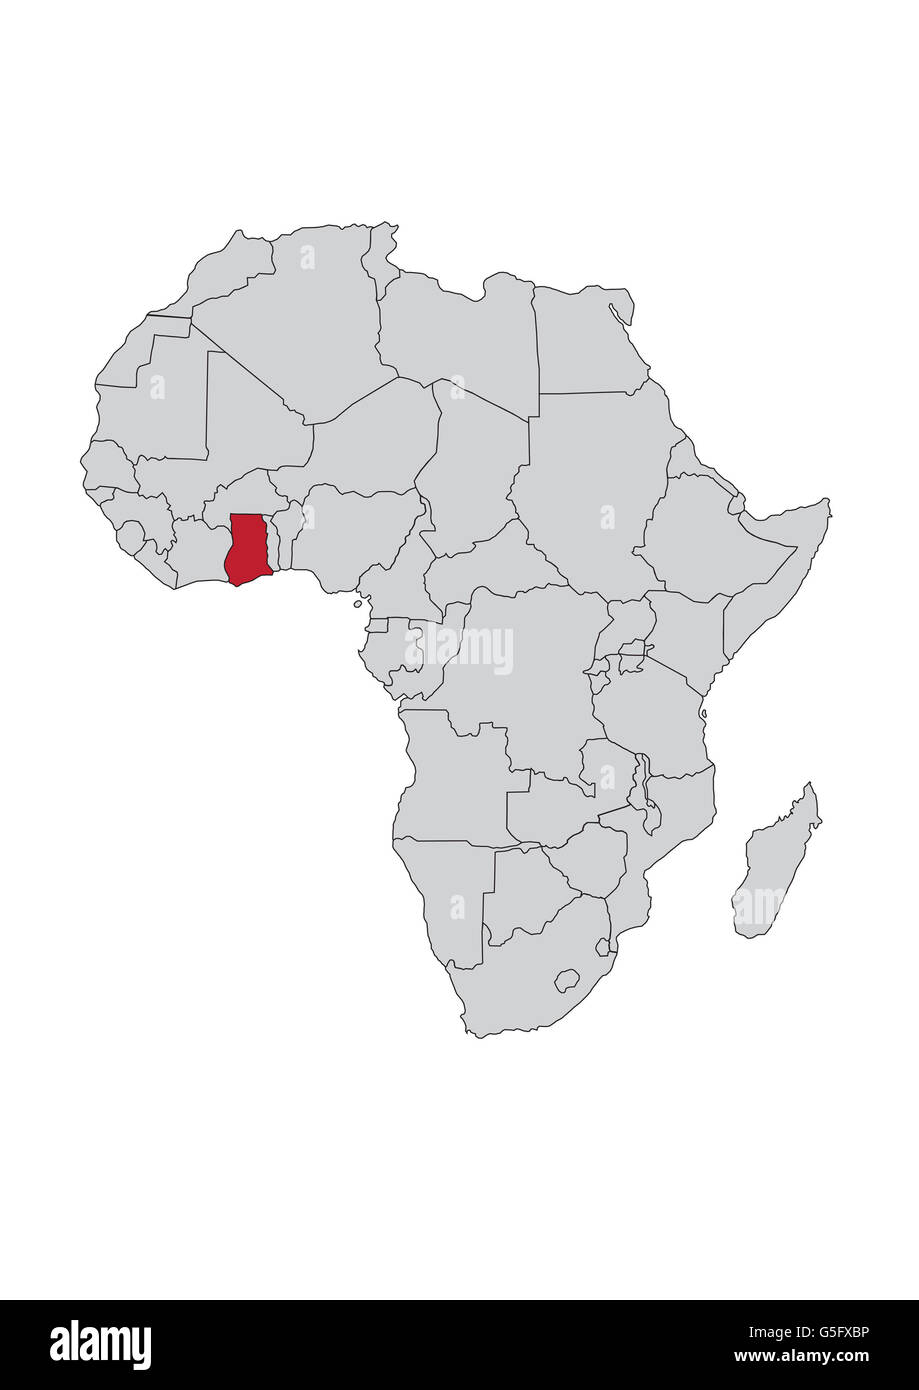 Map Of Africa With Ghana.Map Of Africa Republic Of Ghana Stock Photo 106685482 Alamy